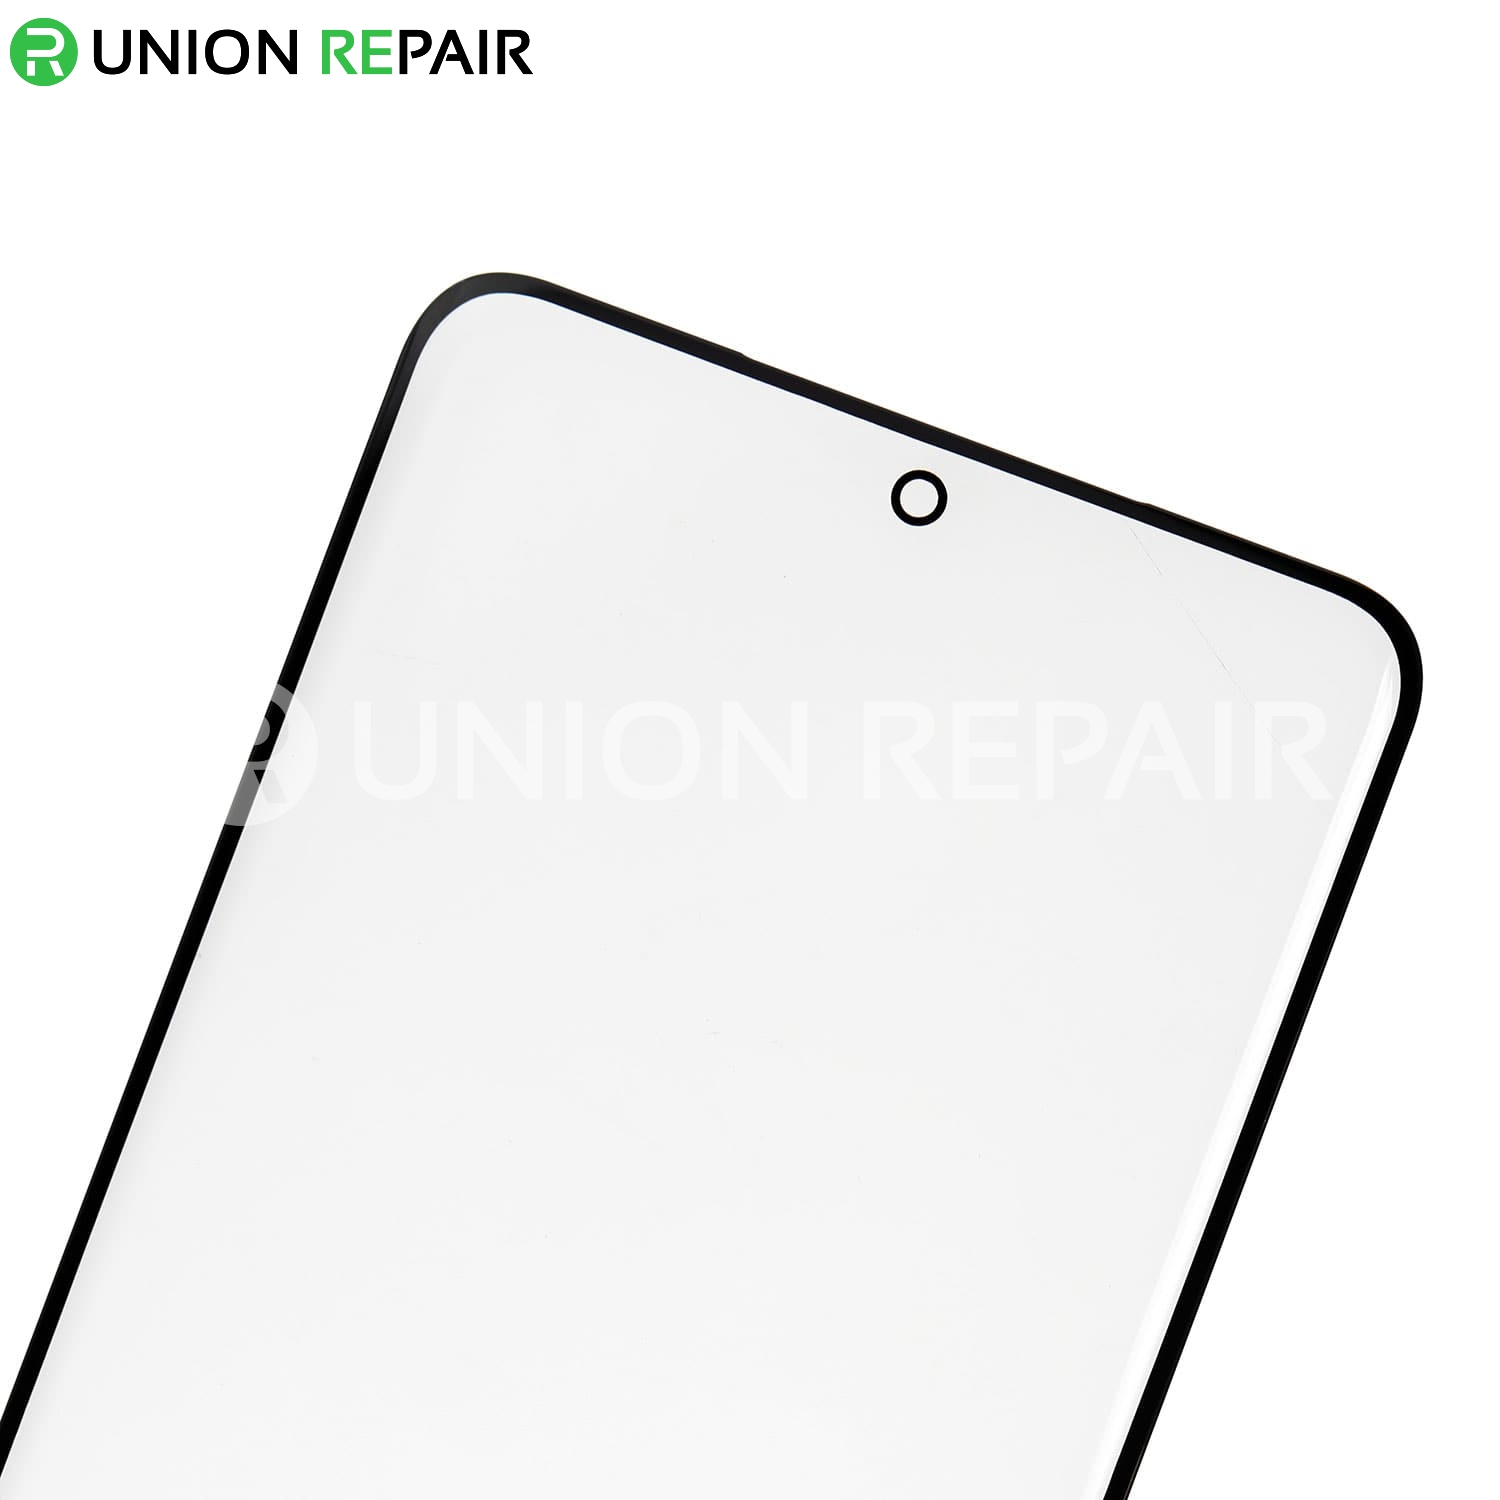 Replacement for Samsung Galaxy S20 Front Glass Lens - Black